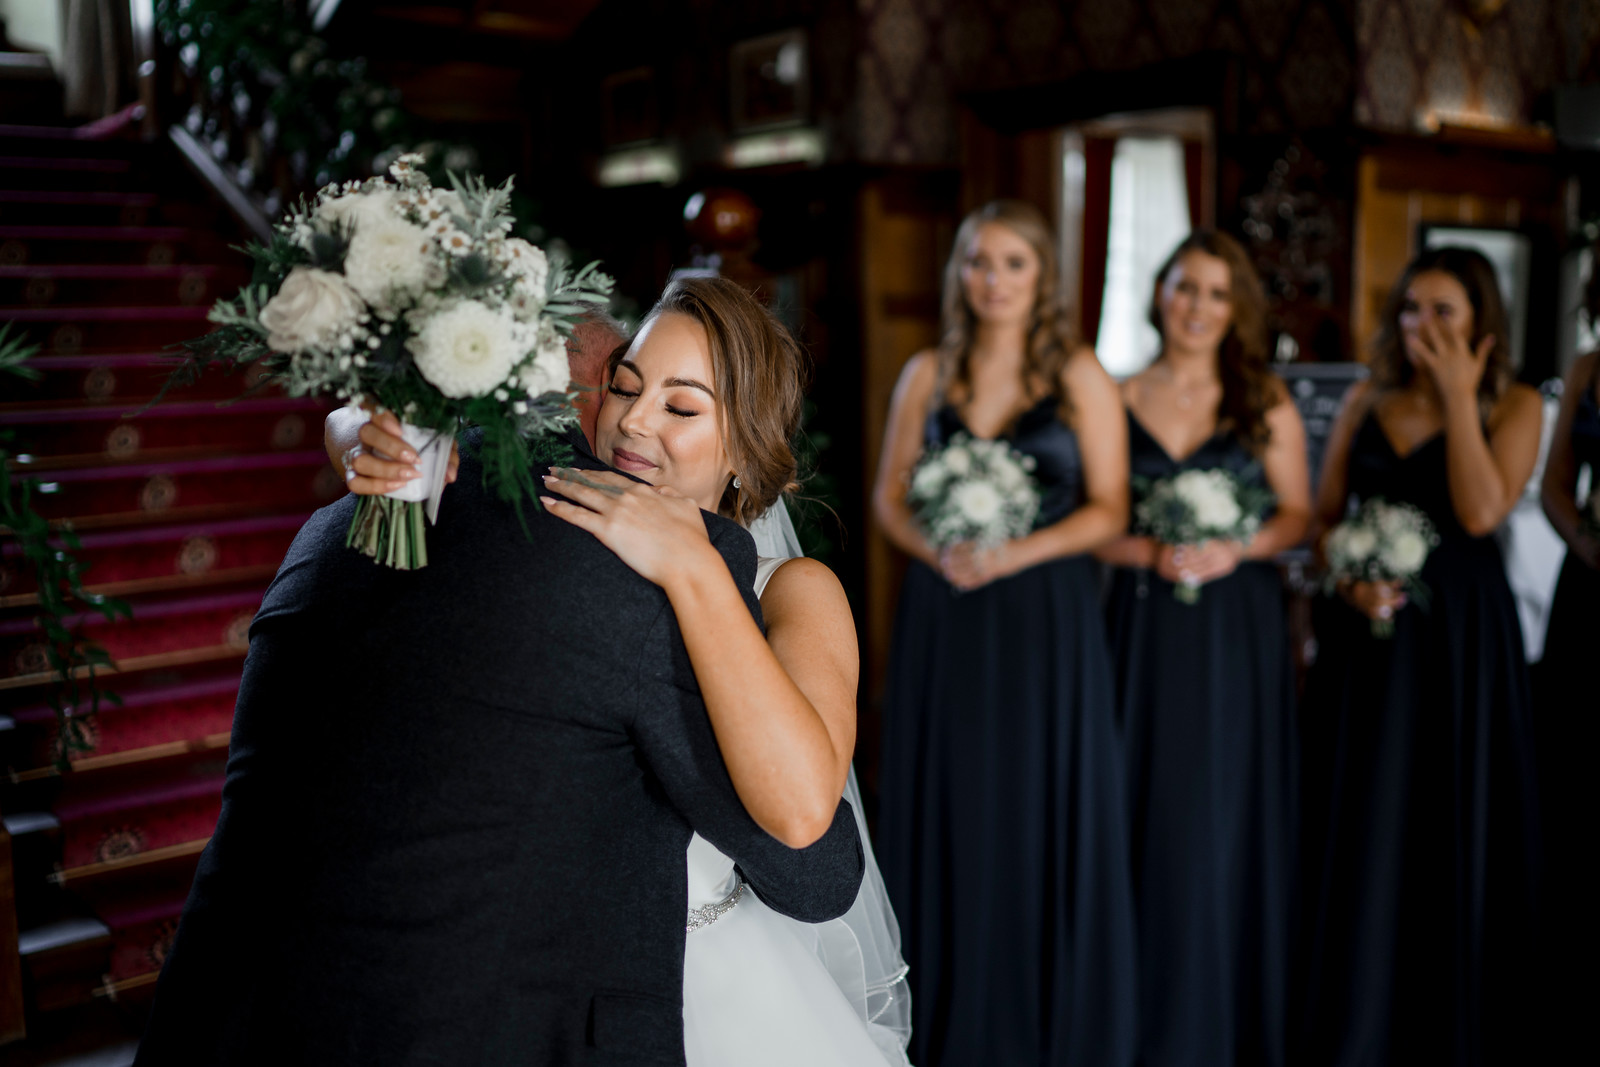 Bride and her father hug as the bridesmaids tear up in the background